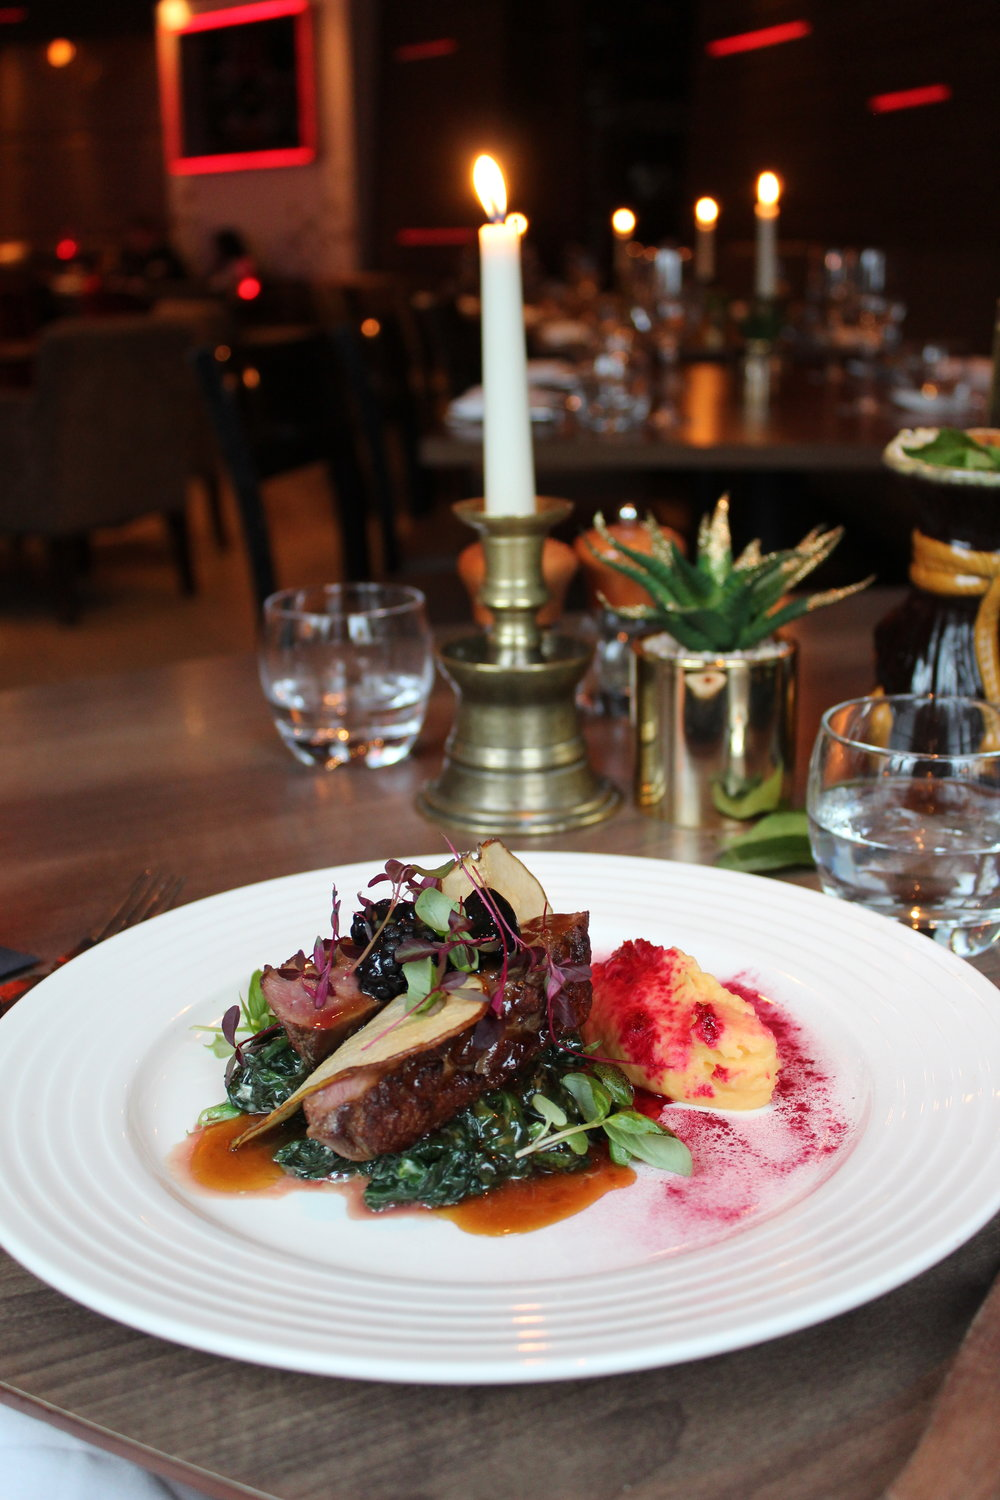 gluten-free dinner at Eaton Square restaurant and bar review